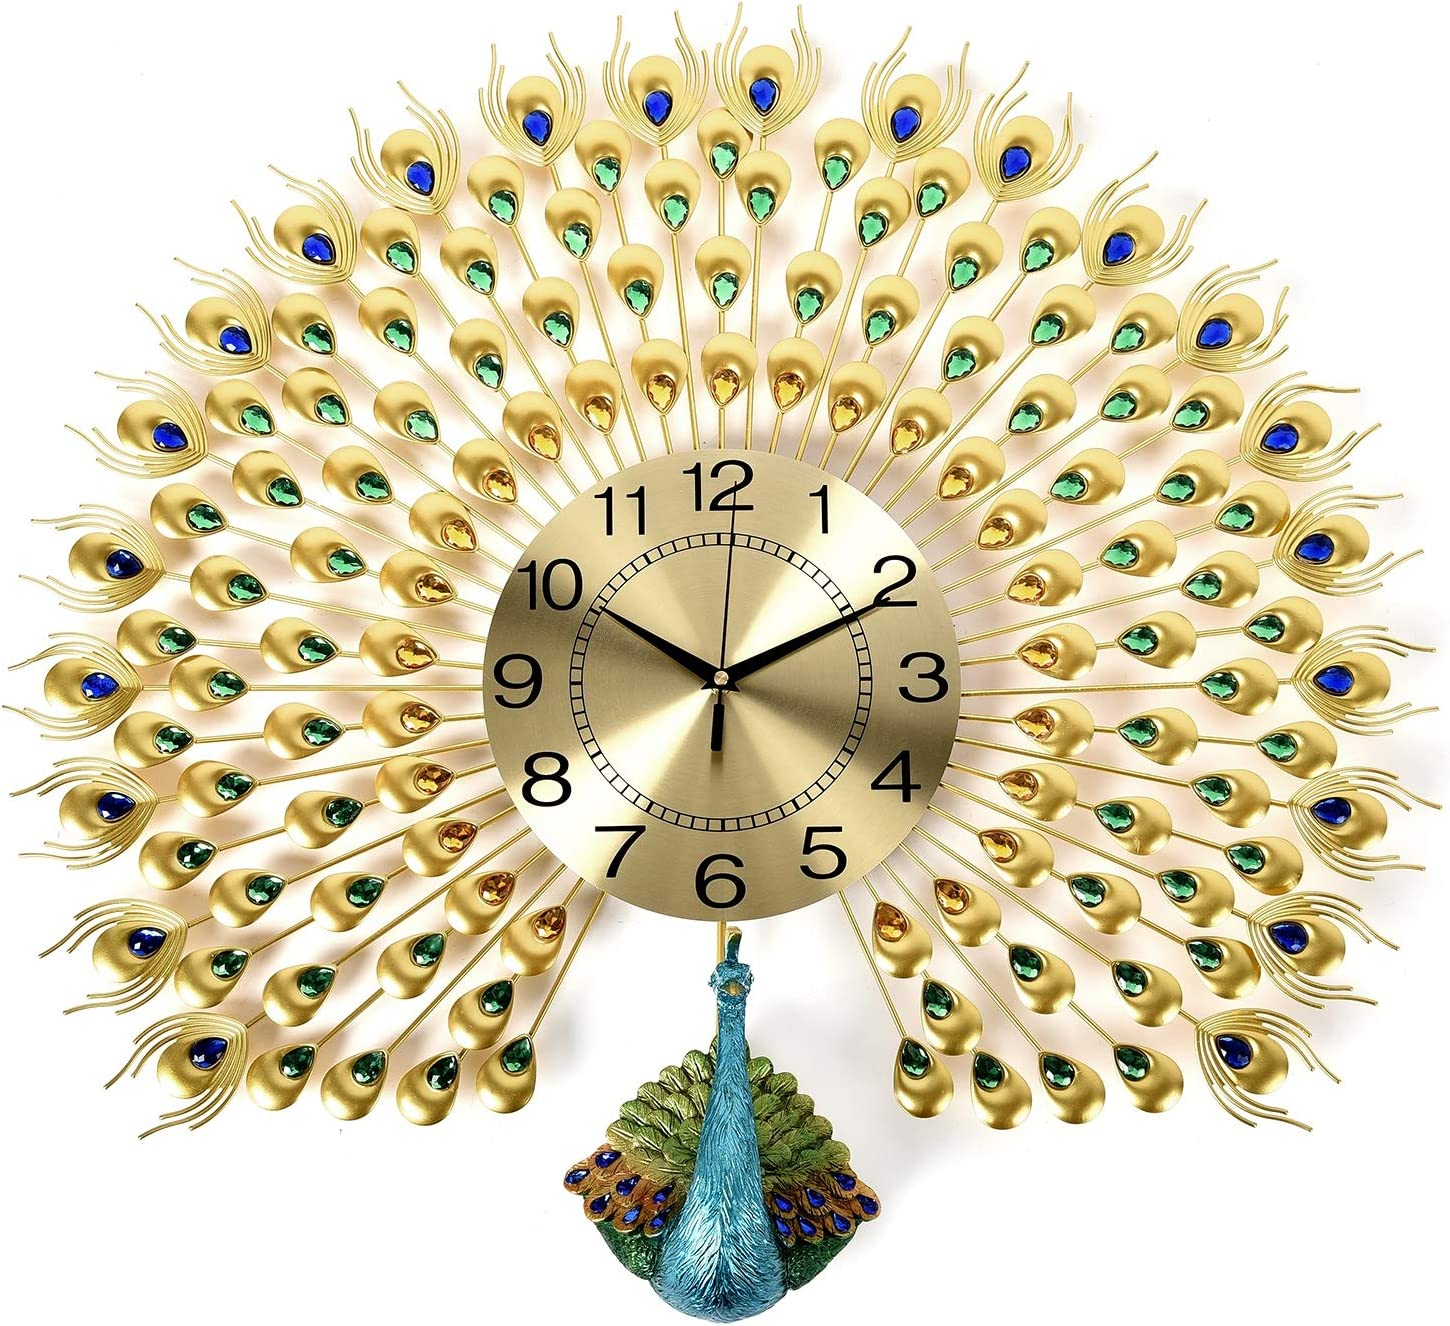 Shop LC Delivering Joy Vintage Iron Resin Room Decorative Peacock Wall Clock Analog AA Battery Operated Home Wall Decor Gifts